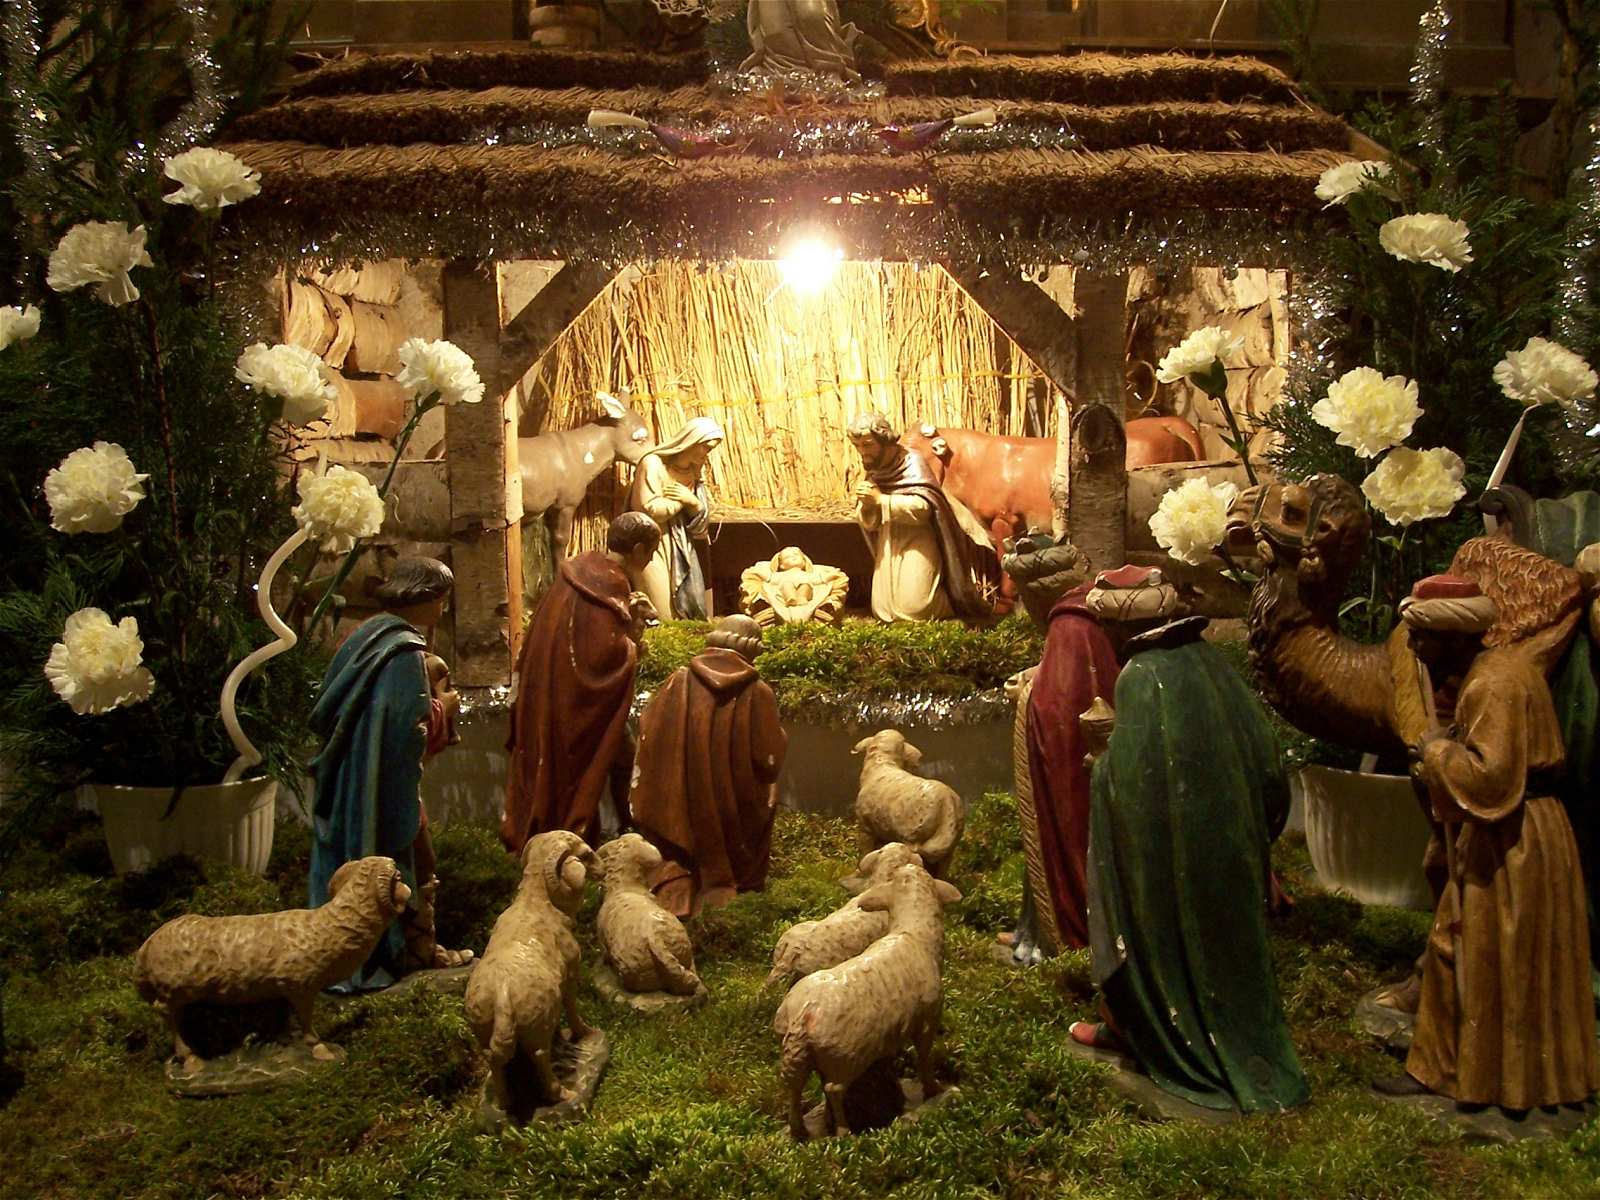 https://presentepravoce.files.wordpress.com/2011/12/presepio1.jpg